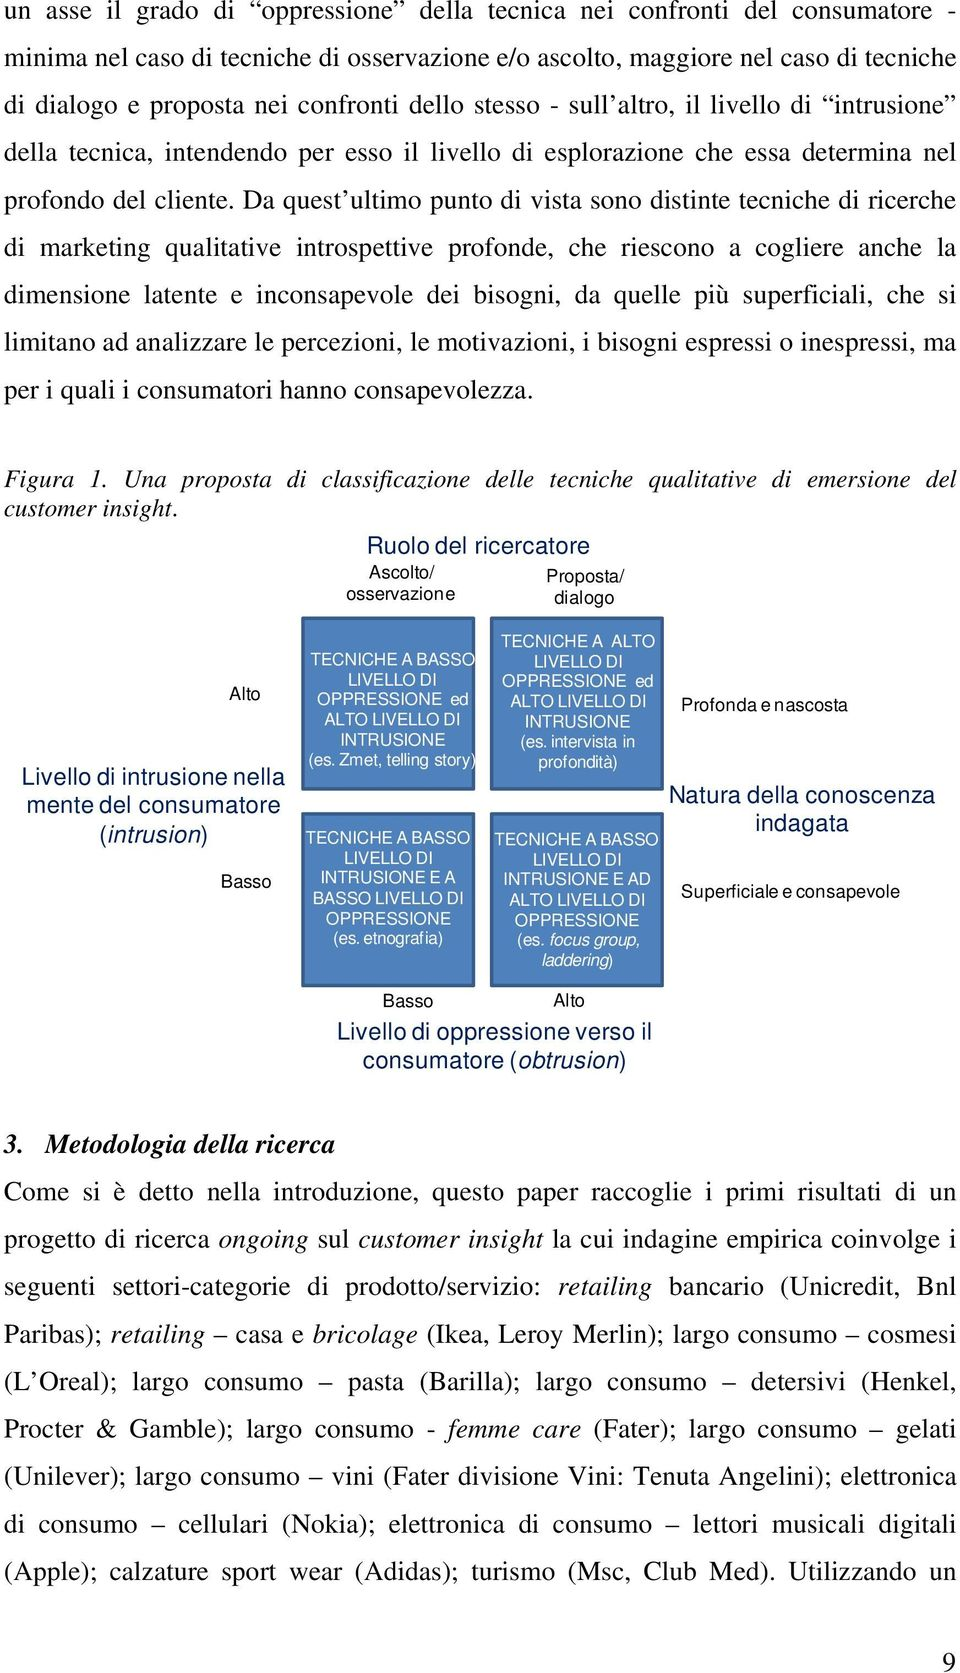 Da quest ultimo punto di vista sono distinte tecniche di ricerche di marketing qualitative introspettive profonde, che riescono a cogliere anche la dimensione latente e inconsapevole dei bisogni, da